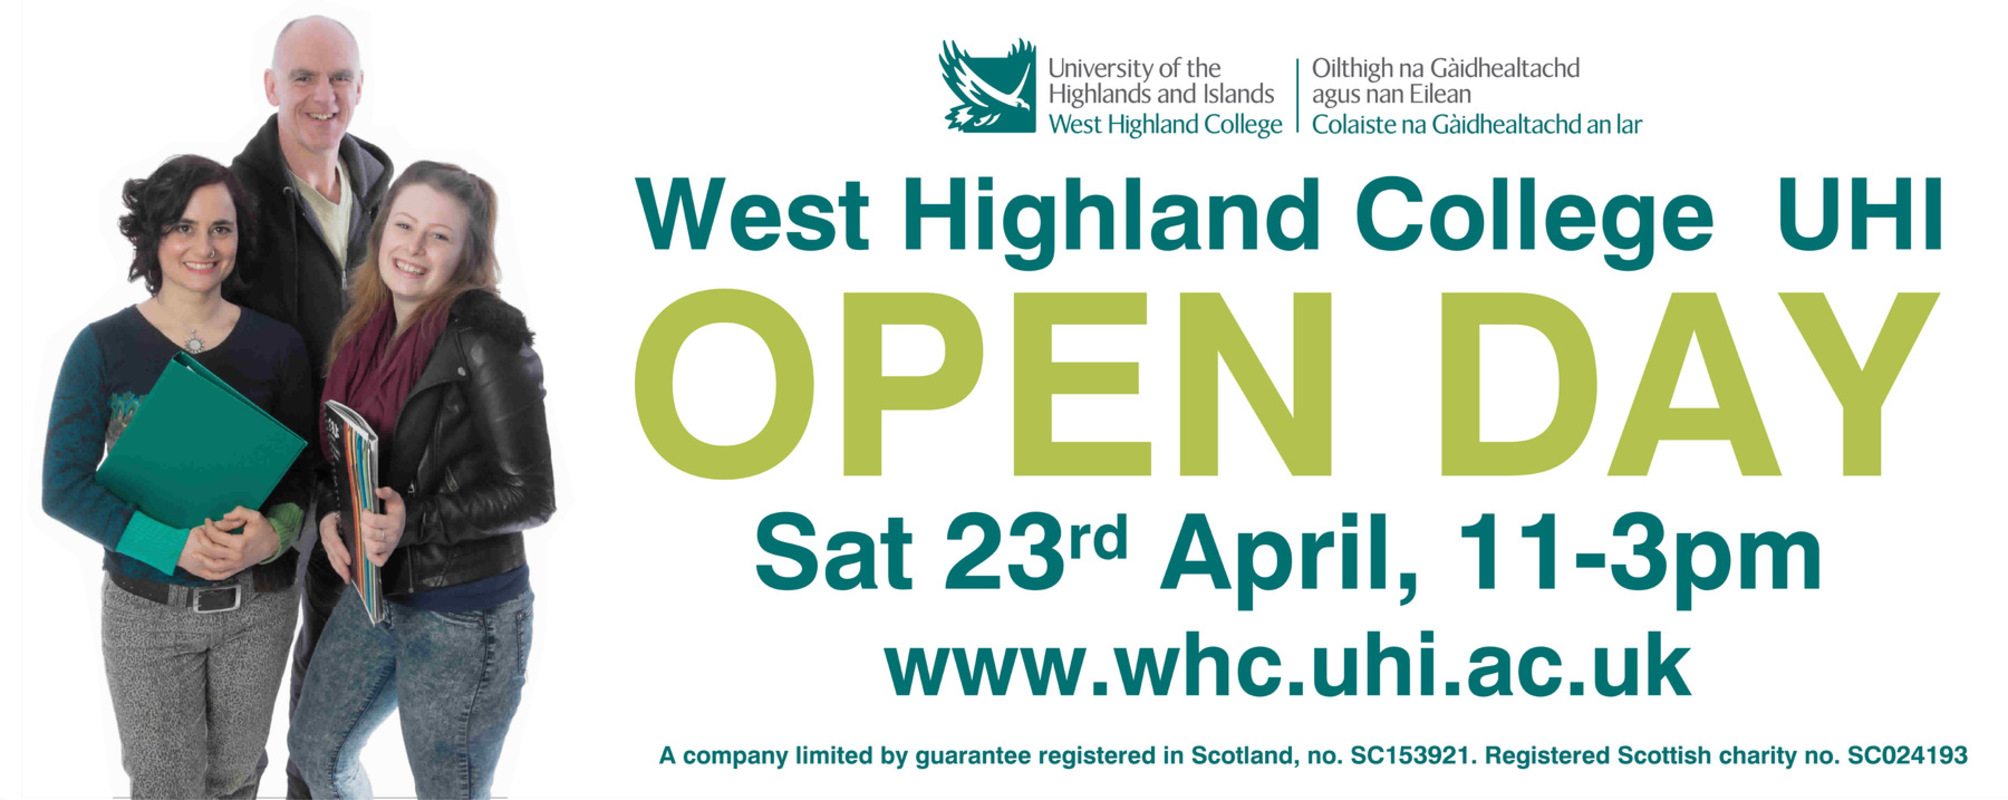 Simon Larson Photography - West Highland College UHI - Finished Leaflet